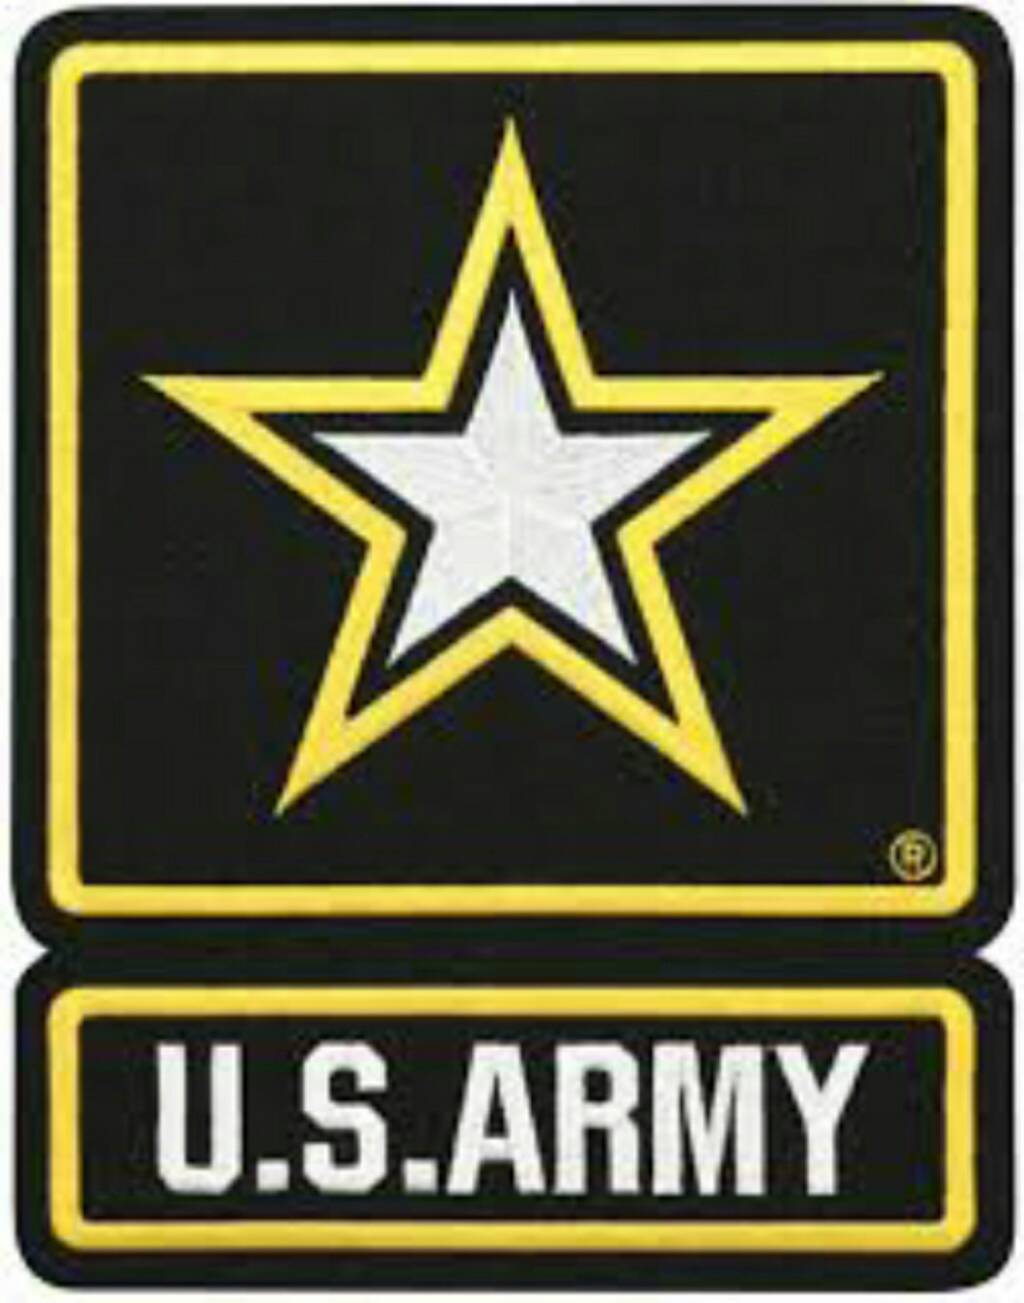 Click image for larger version  Name:hp8425-5-medium-size-us-army-military-jacket-shirt-uniform-star-patch-emblem-insignia.jpeg Views:11 Size:95.6 KB ID:314007